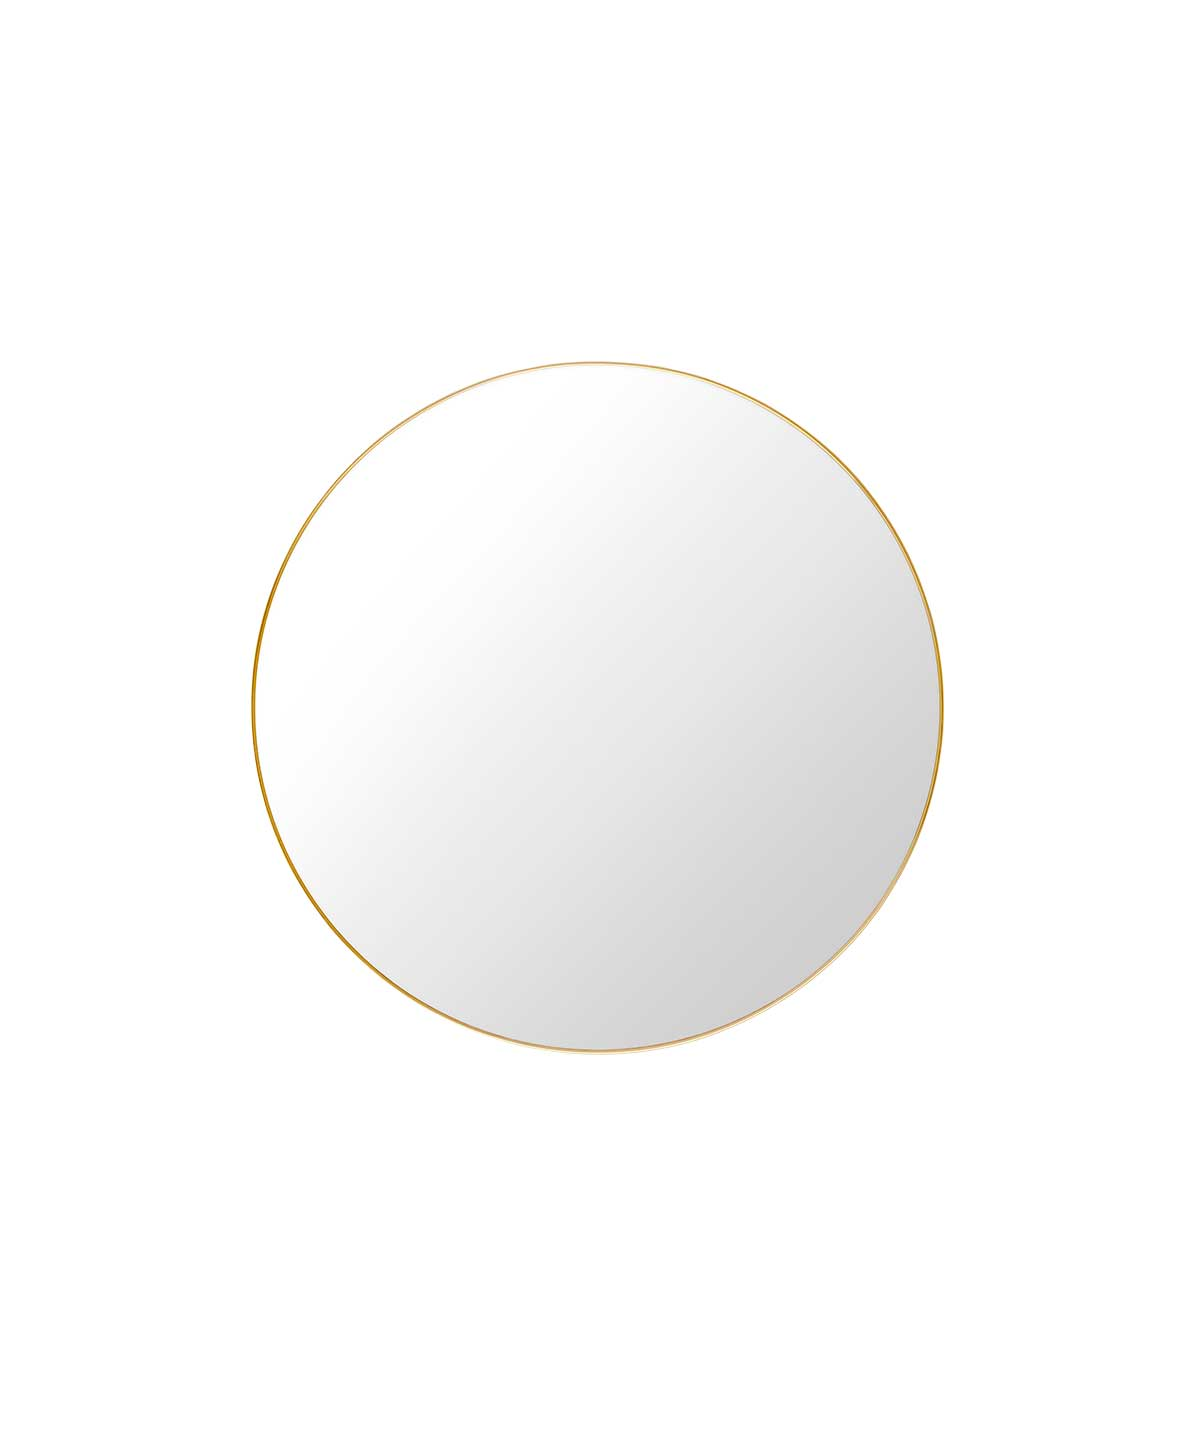 Gubi Round Wall Mirror